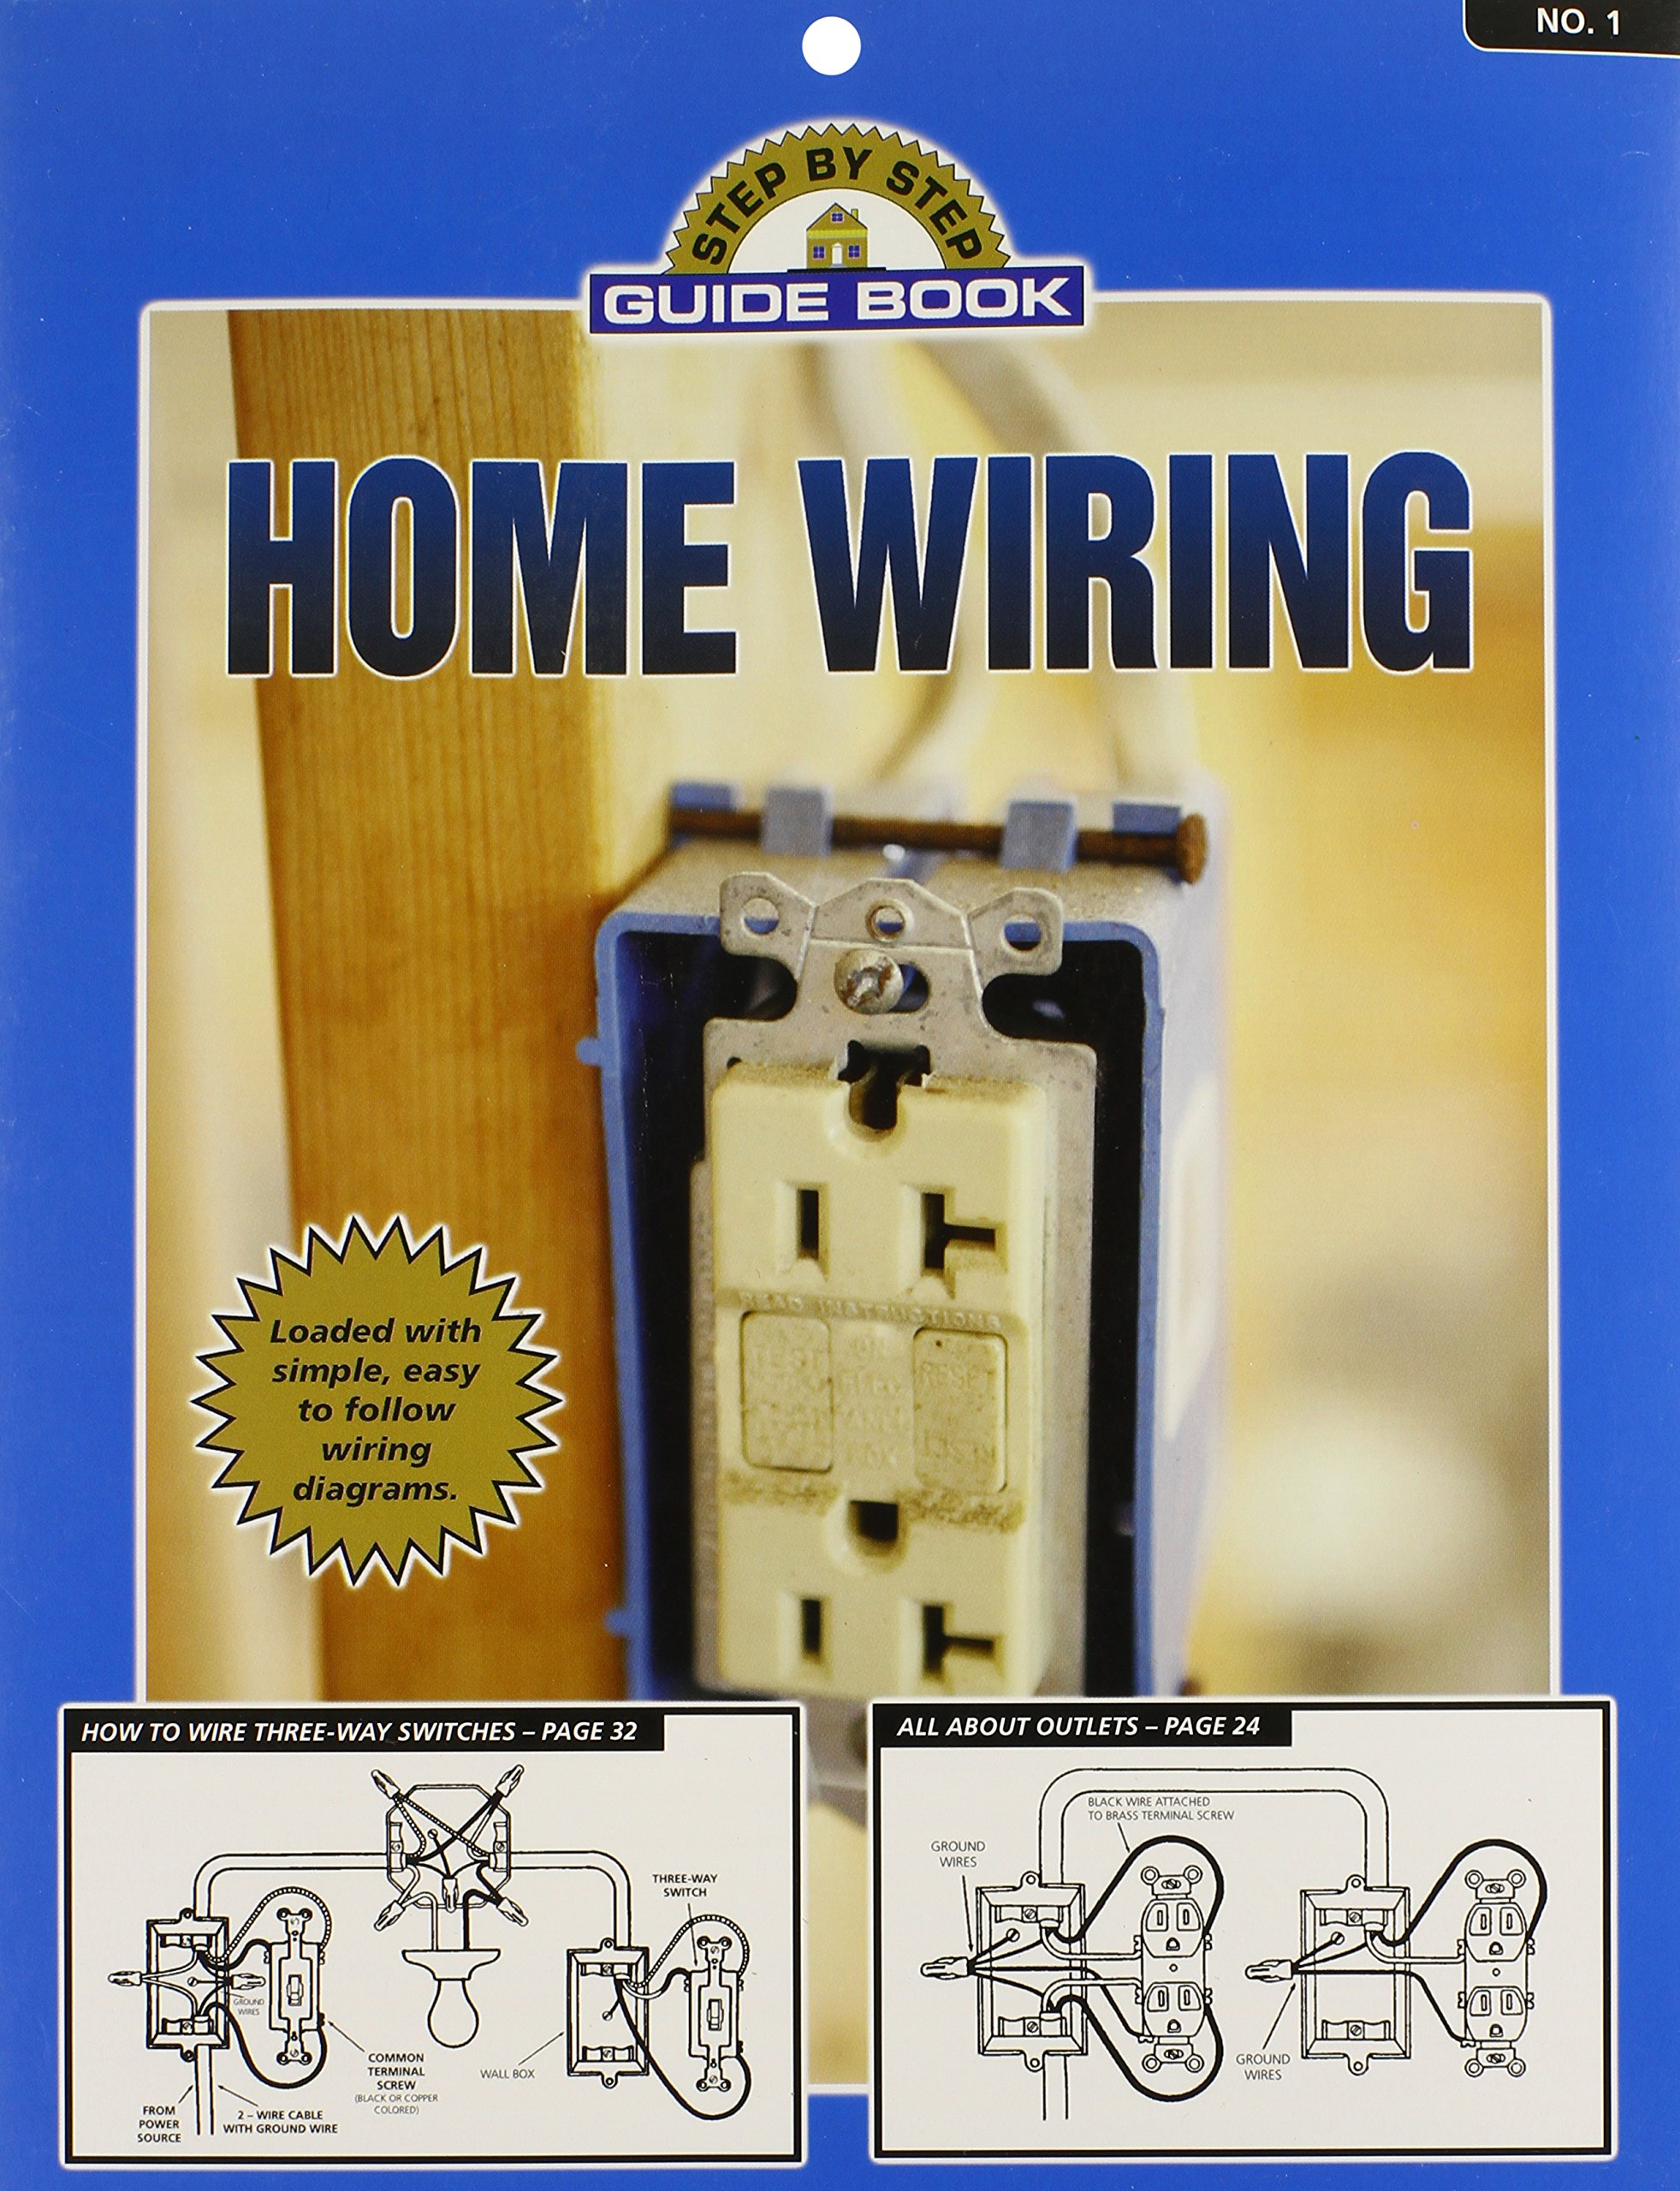 Step By Guide Book On Home Wiring Ray Mcreynolds Elaine Wall Socket Diagram Together With Electrical Ground Wire Shane E Richins 9780961920104 Books